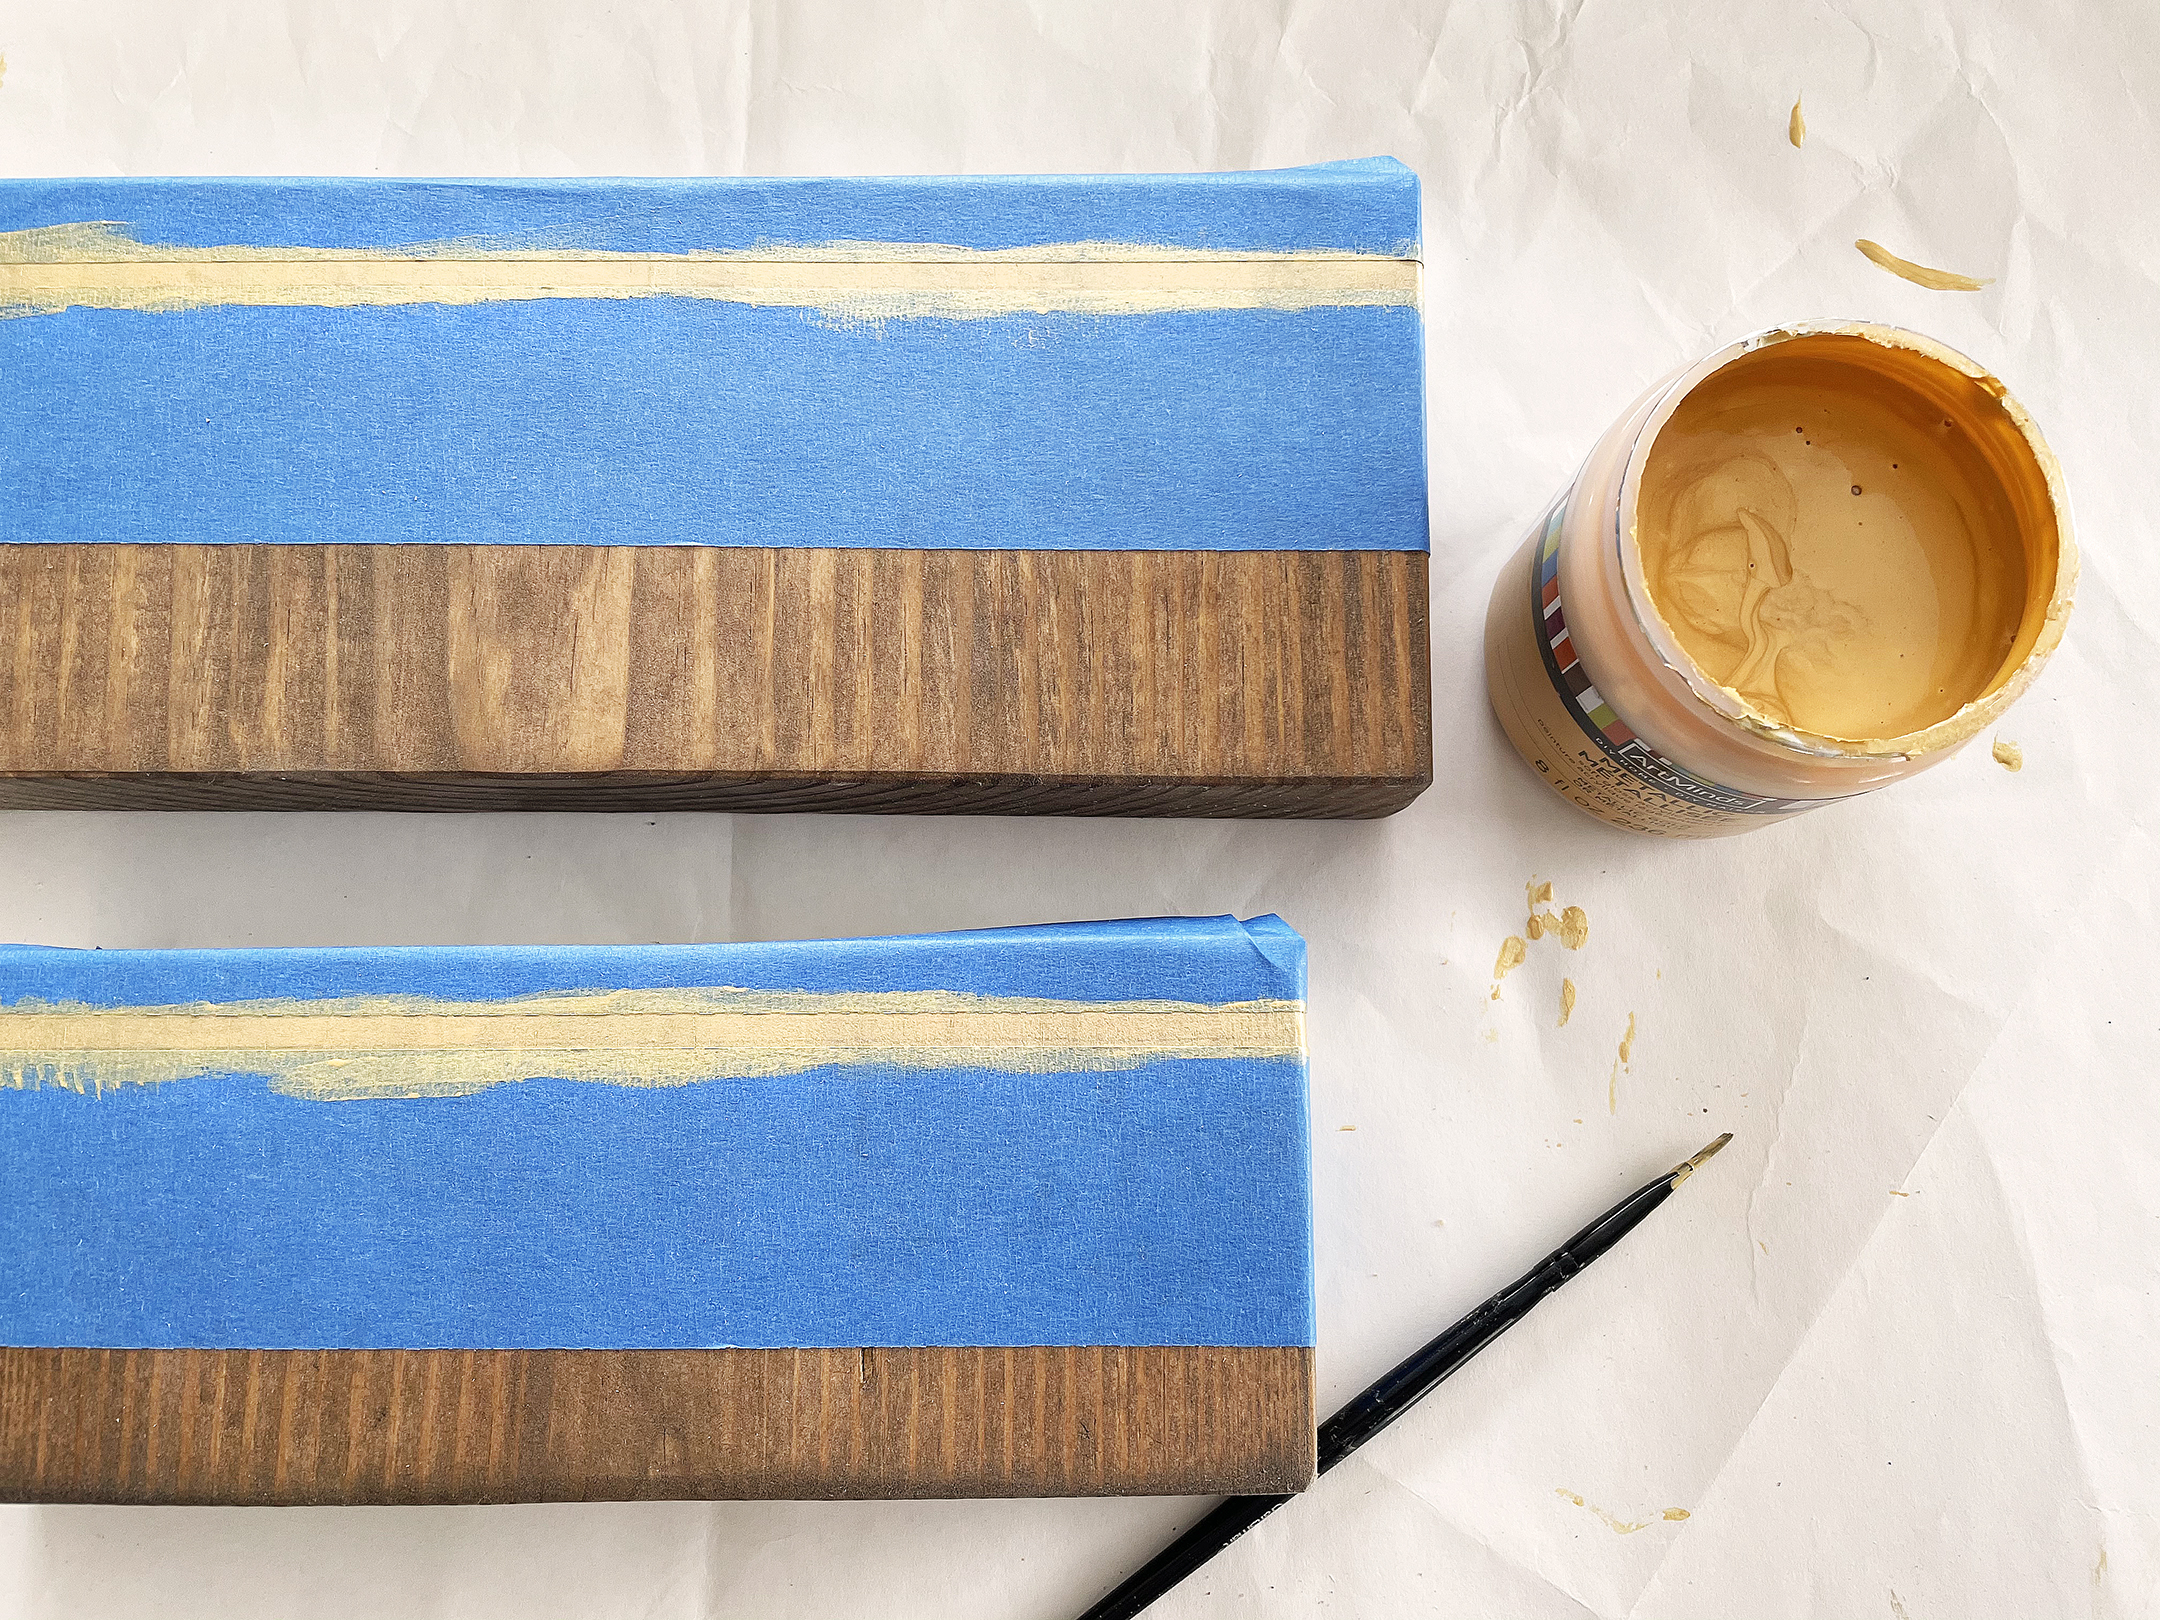 Boroughfare Home Vintage Lavender Stand DIY Project with Metallic Gold Paint on Wood